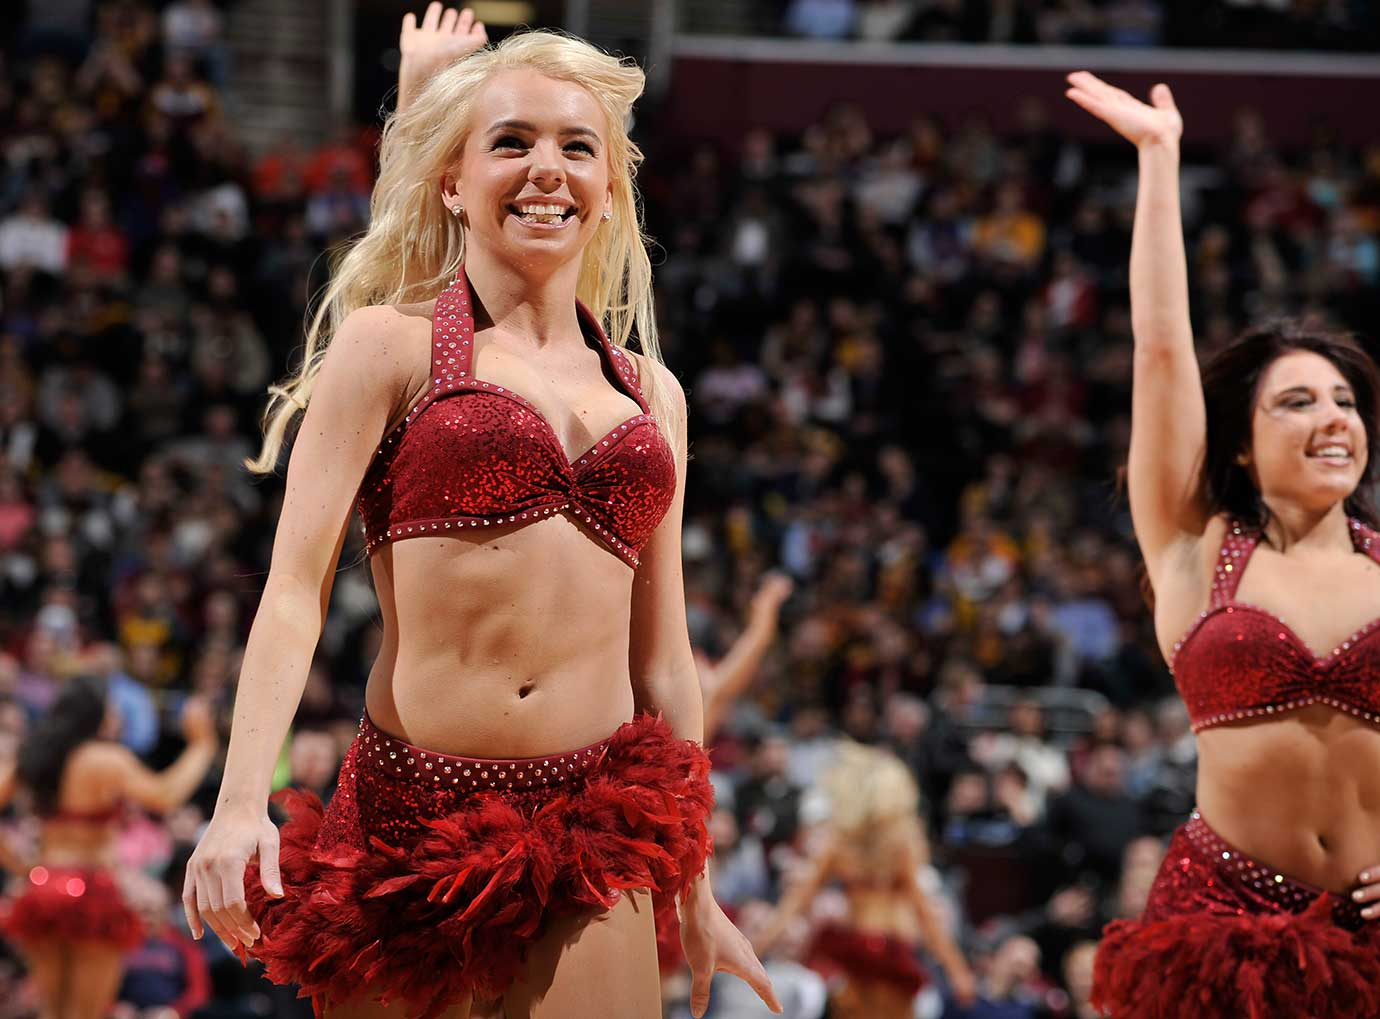 The Cleveland Cavaliers dance team during the game against the Detroit Pistons.